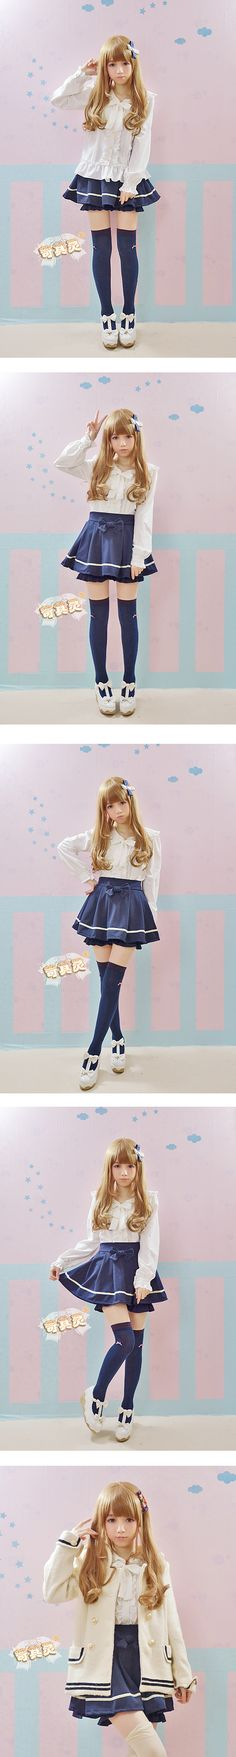 Cute, sweet gyaru: Off white blouse with frills. Navy skirt with white details. Off white shoes with a bow. Gyaru Fashion, Harajuku Fashion, Kawaii Fashion, Lolita Fashion, Cute Fashion, Looks Kawaii, Kawaii Cute, Kawaii Girl, Kawaii Style